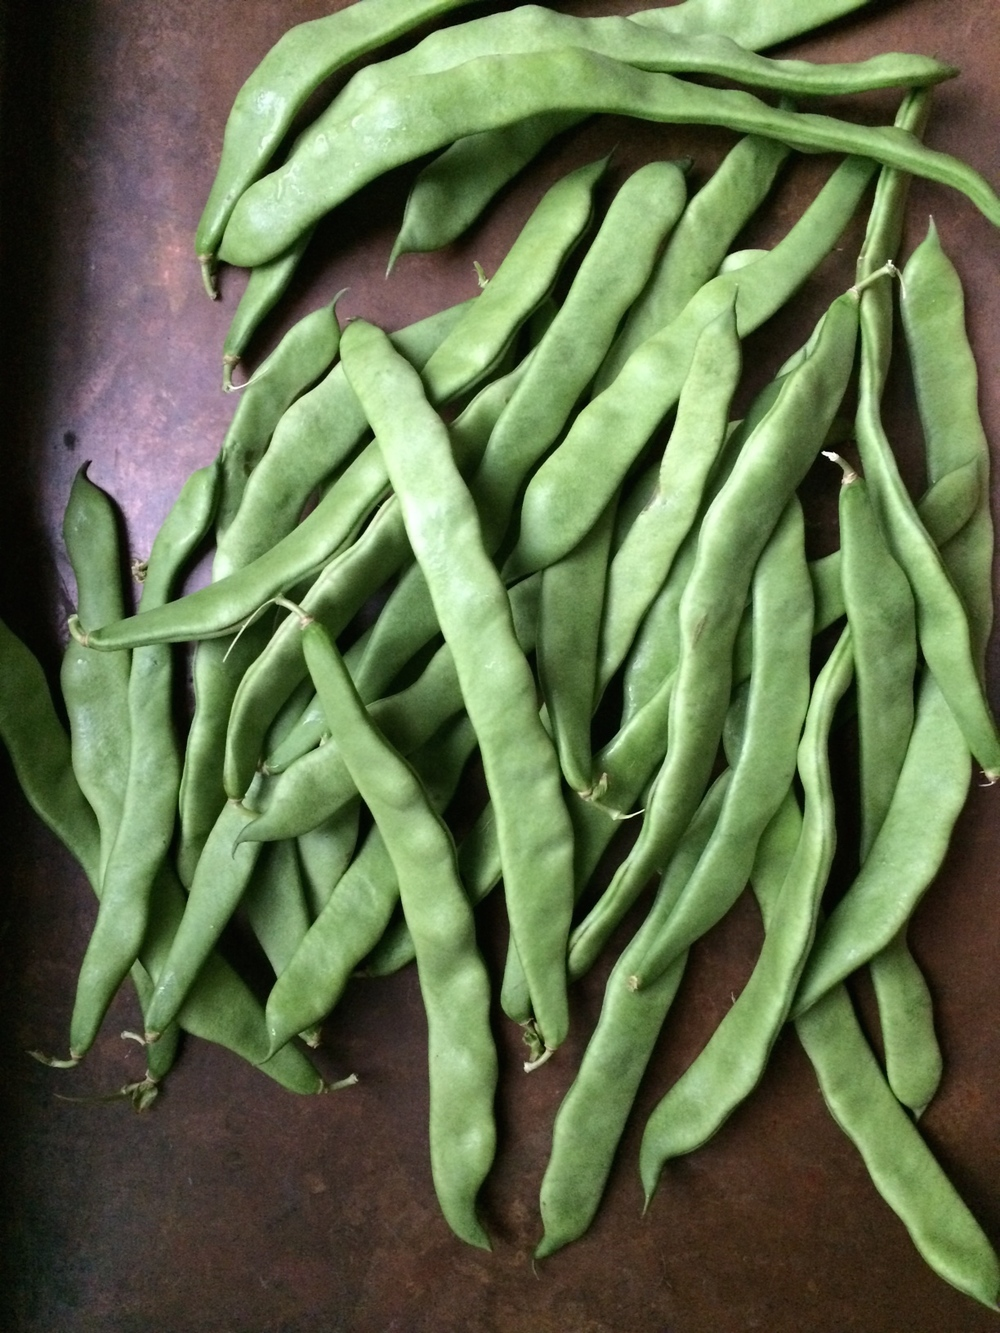 Northeaster pole beans